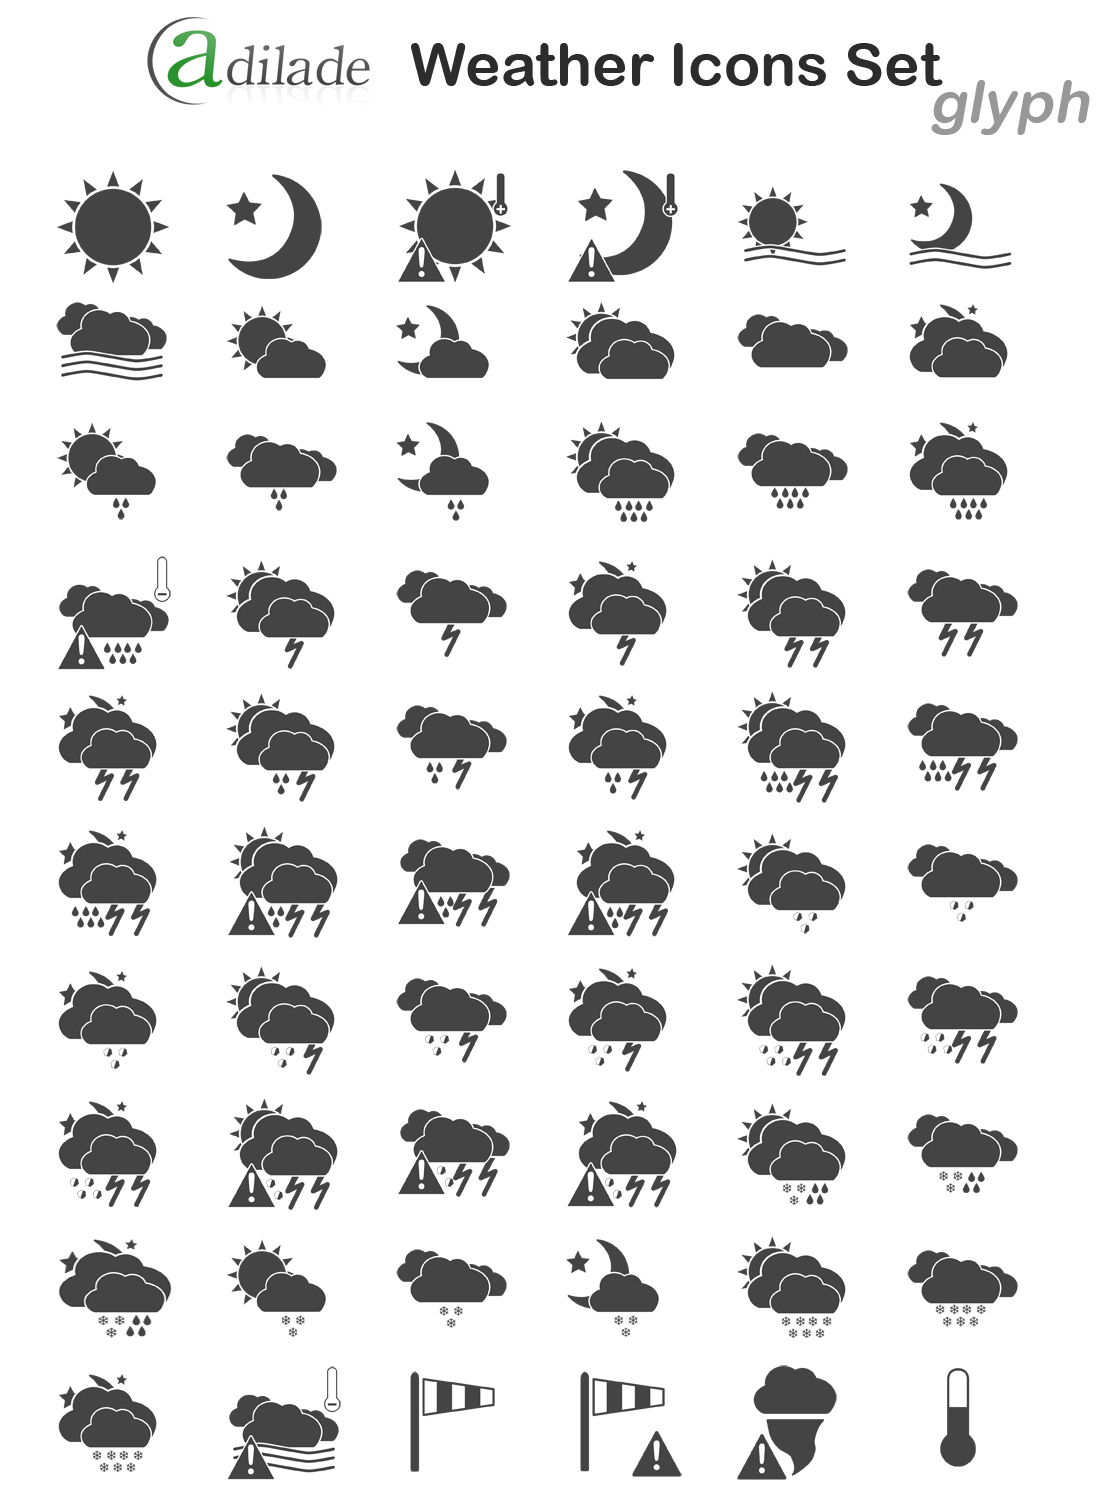 Adilade Weather Icons Set Glyph Version